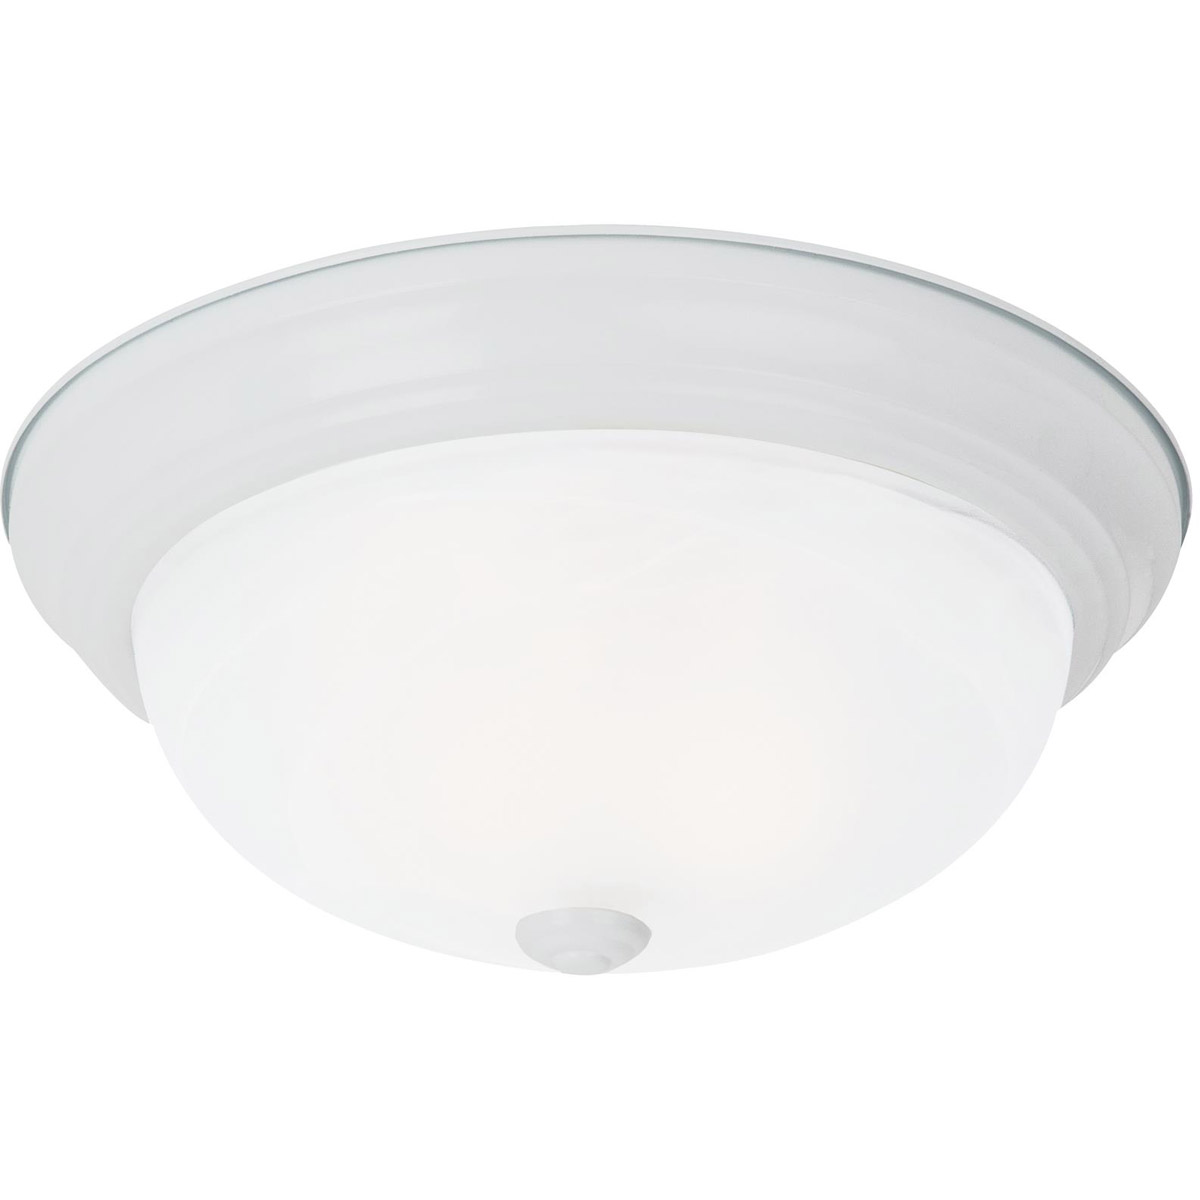 Sea Gull Lighting Windgate 3 Light Flush Mount in White 75943-15 photo